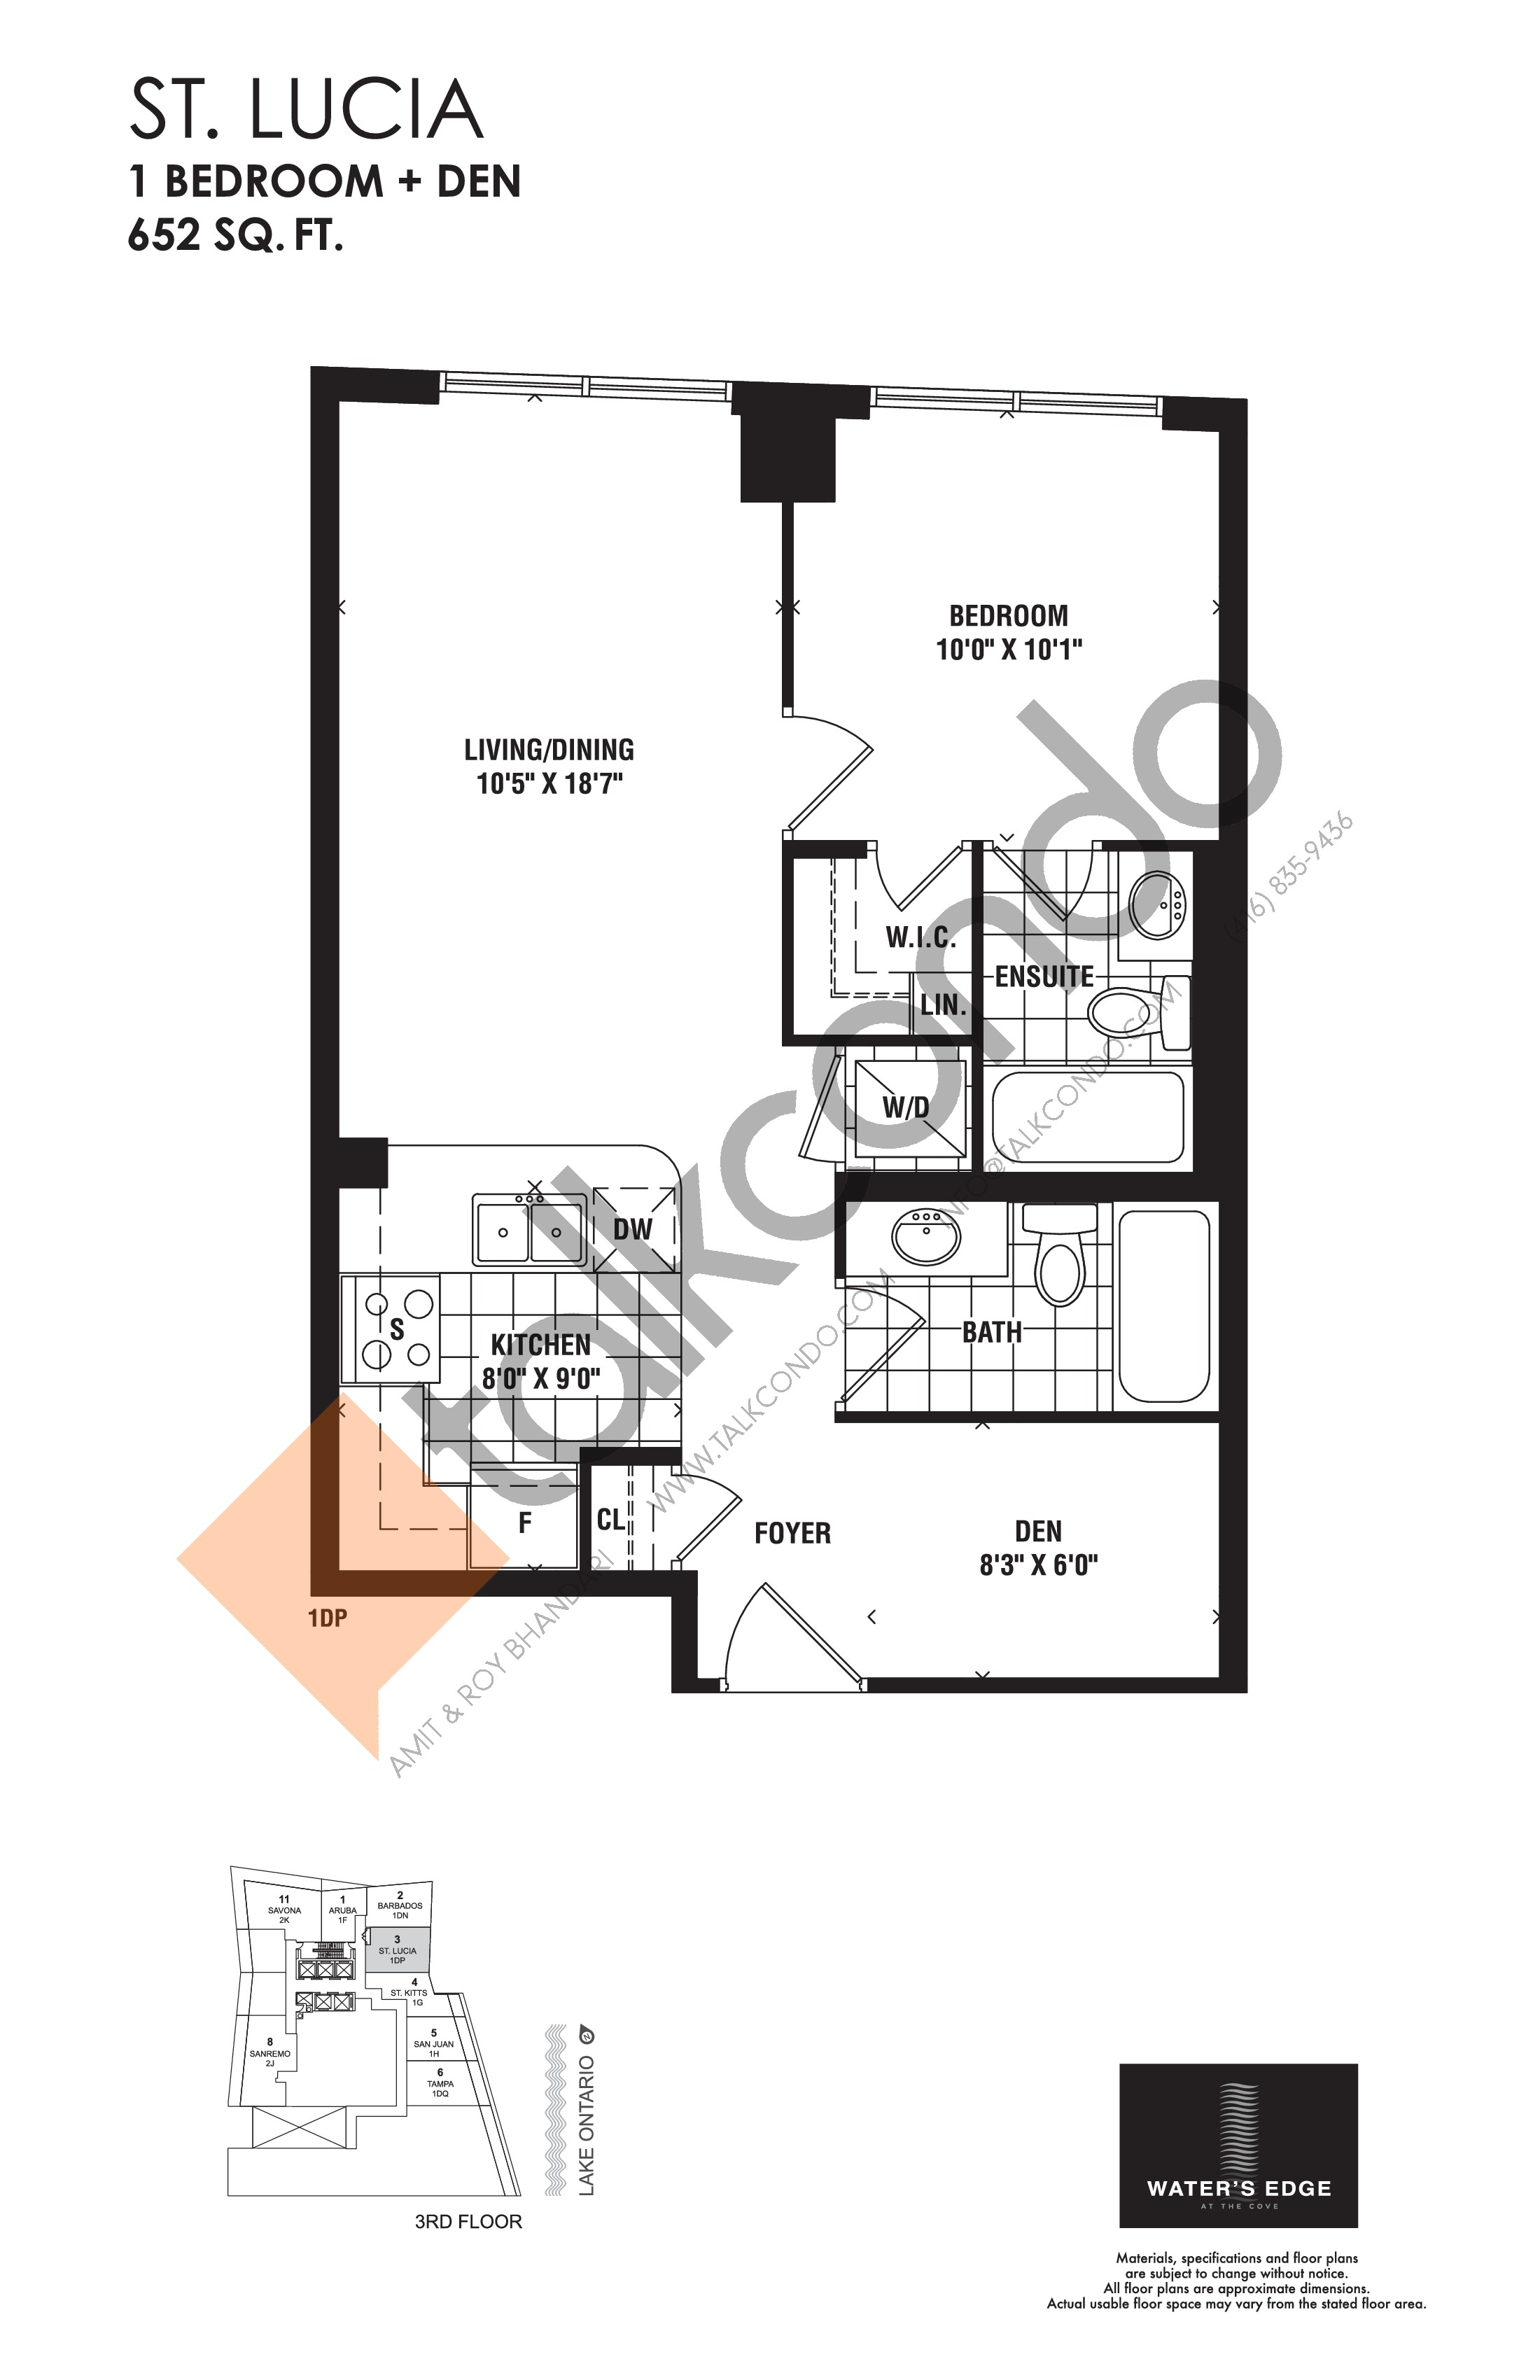 St. Lucia Floor Plan at Water's Edge at the Cove Condos - 652 sq.ft